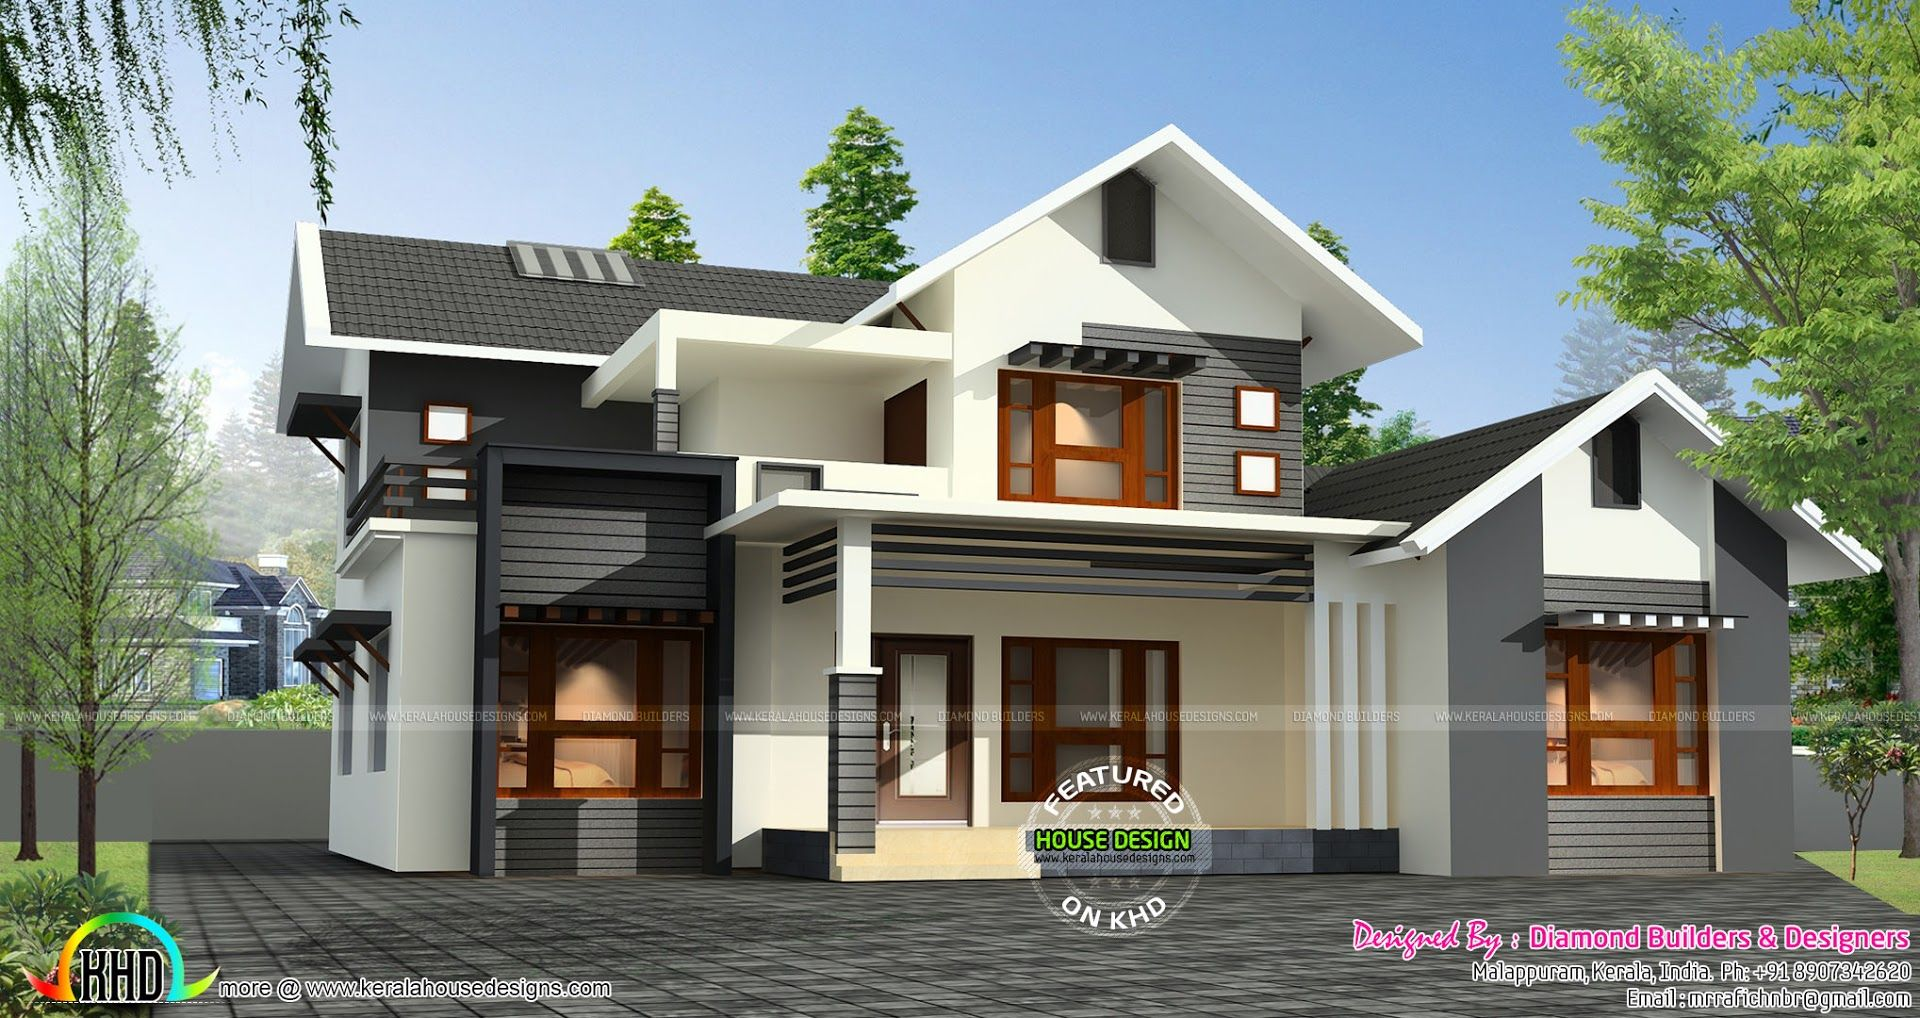 Sloping Roof Mix 1500 Sq Ft Home Kerala House Design House Remodeling Plans Modern House Design